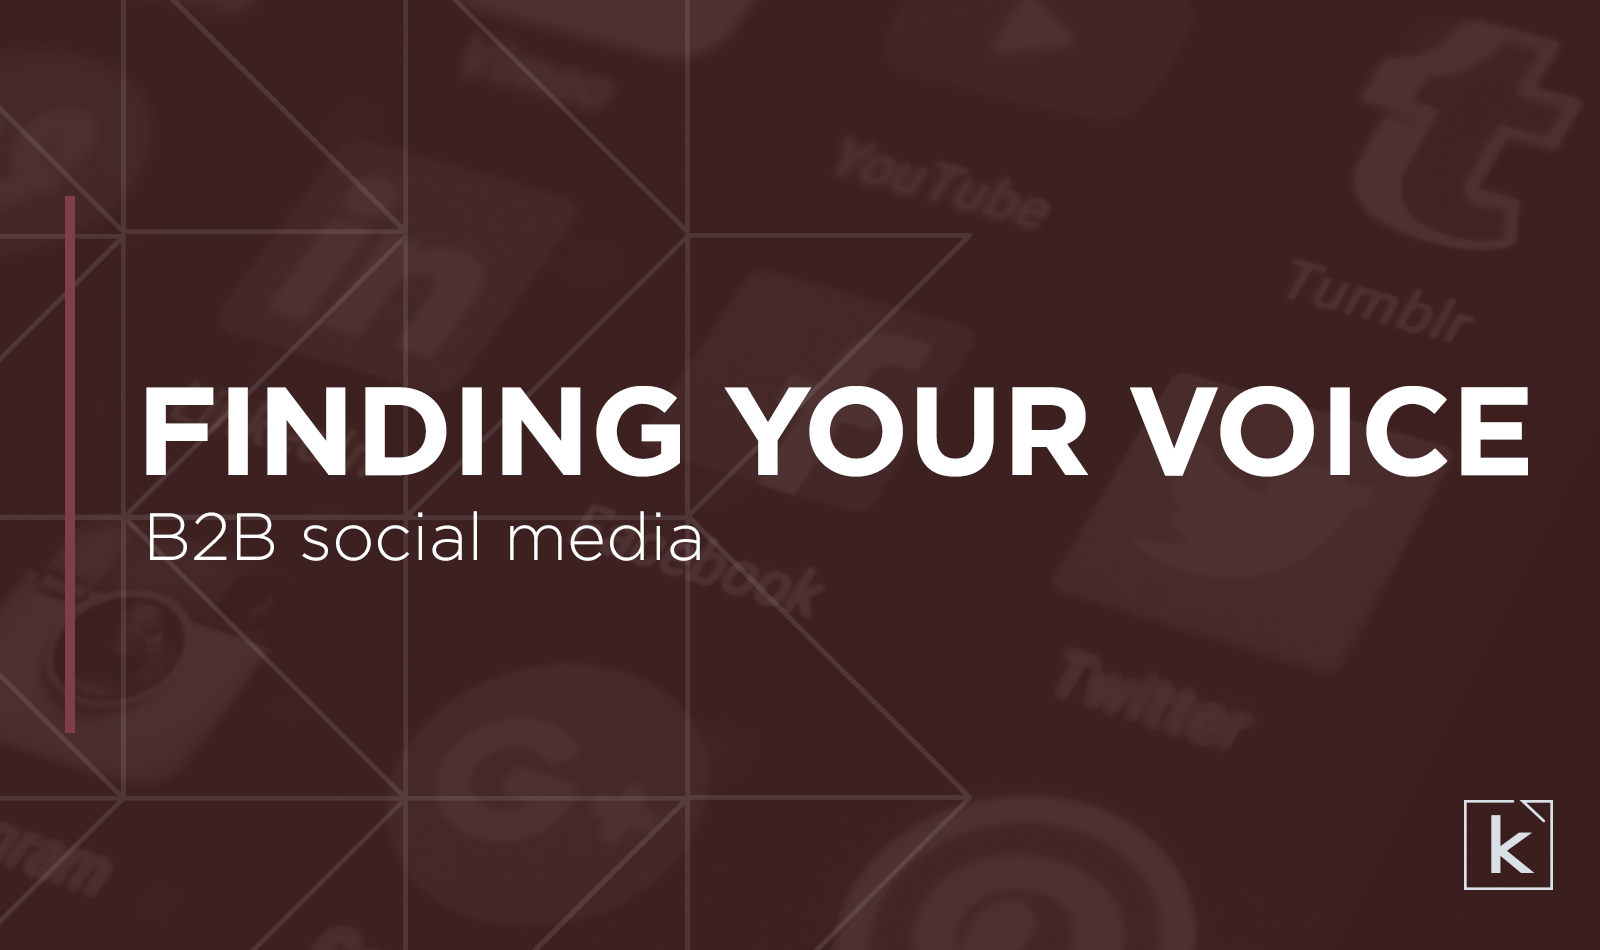 B2B-social-media-finding-your-voice